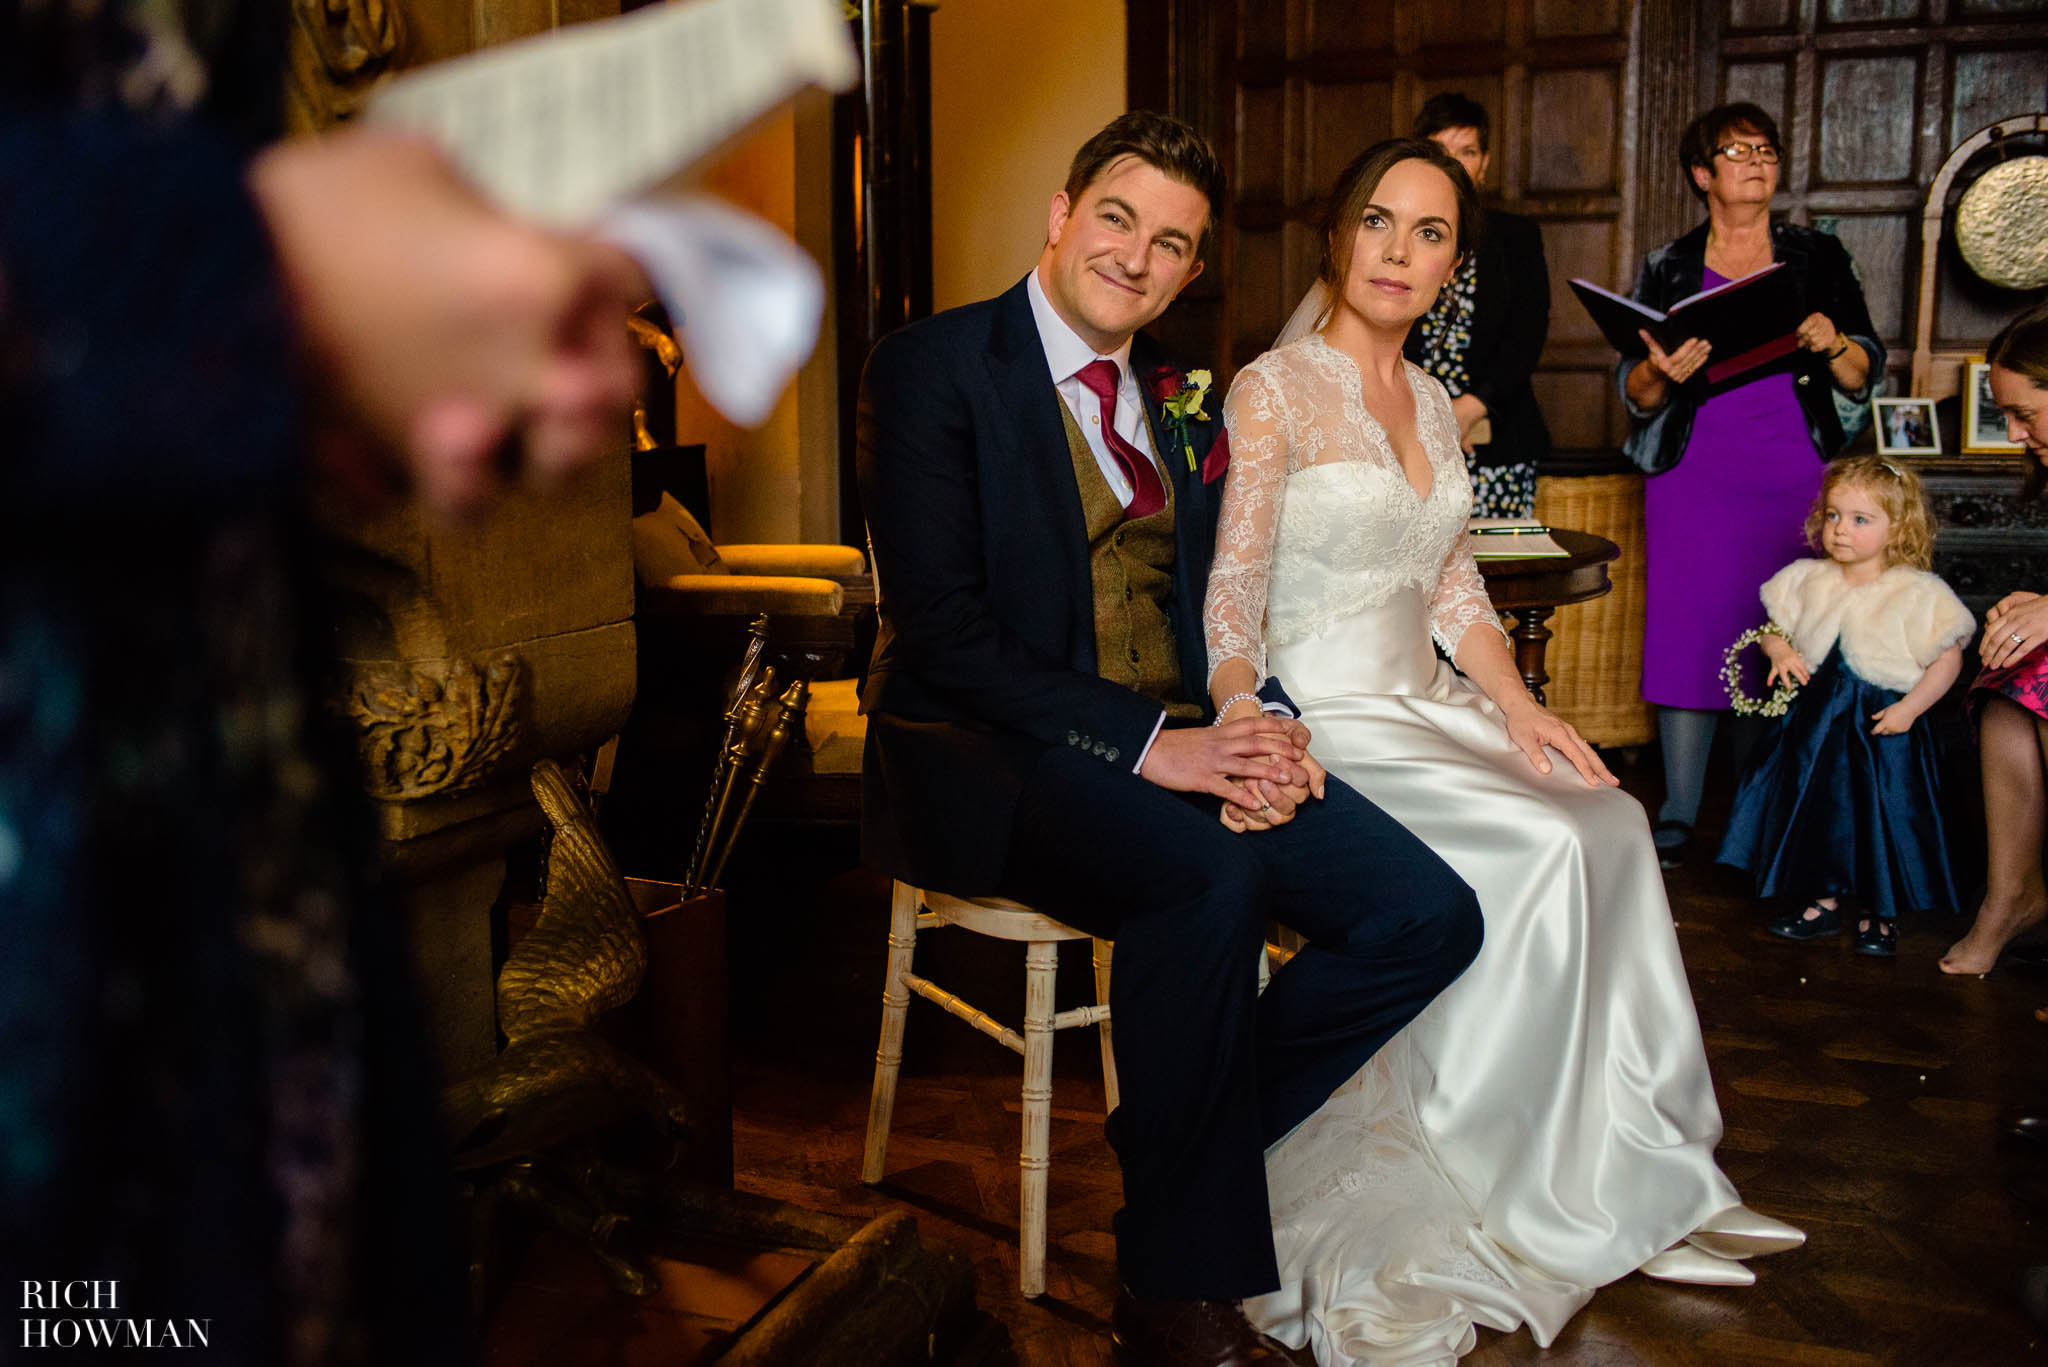 Bride and groom enjoy a reading during their wedding photography at Huntsham Court